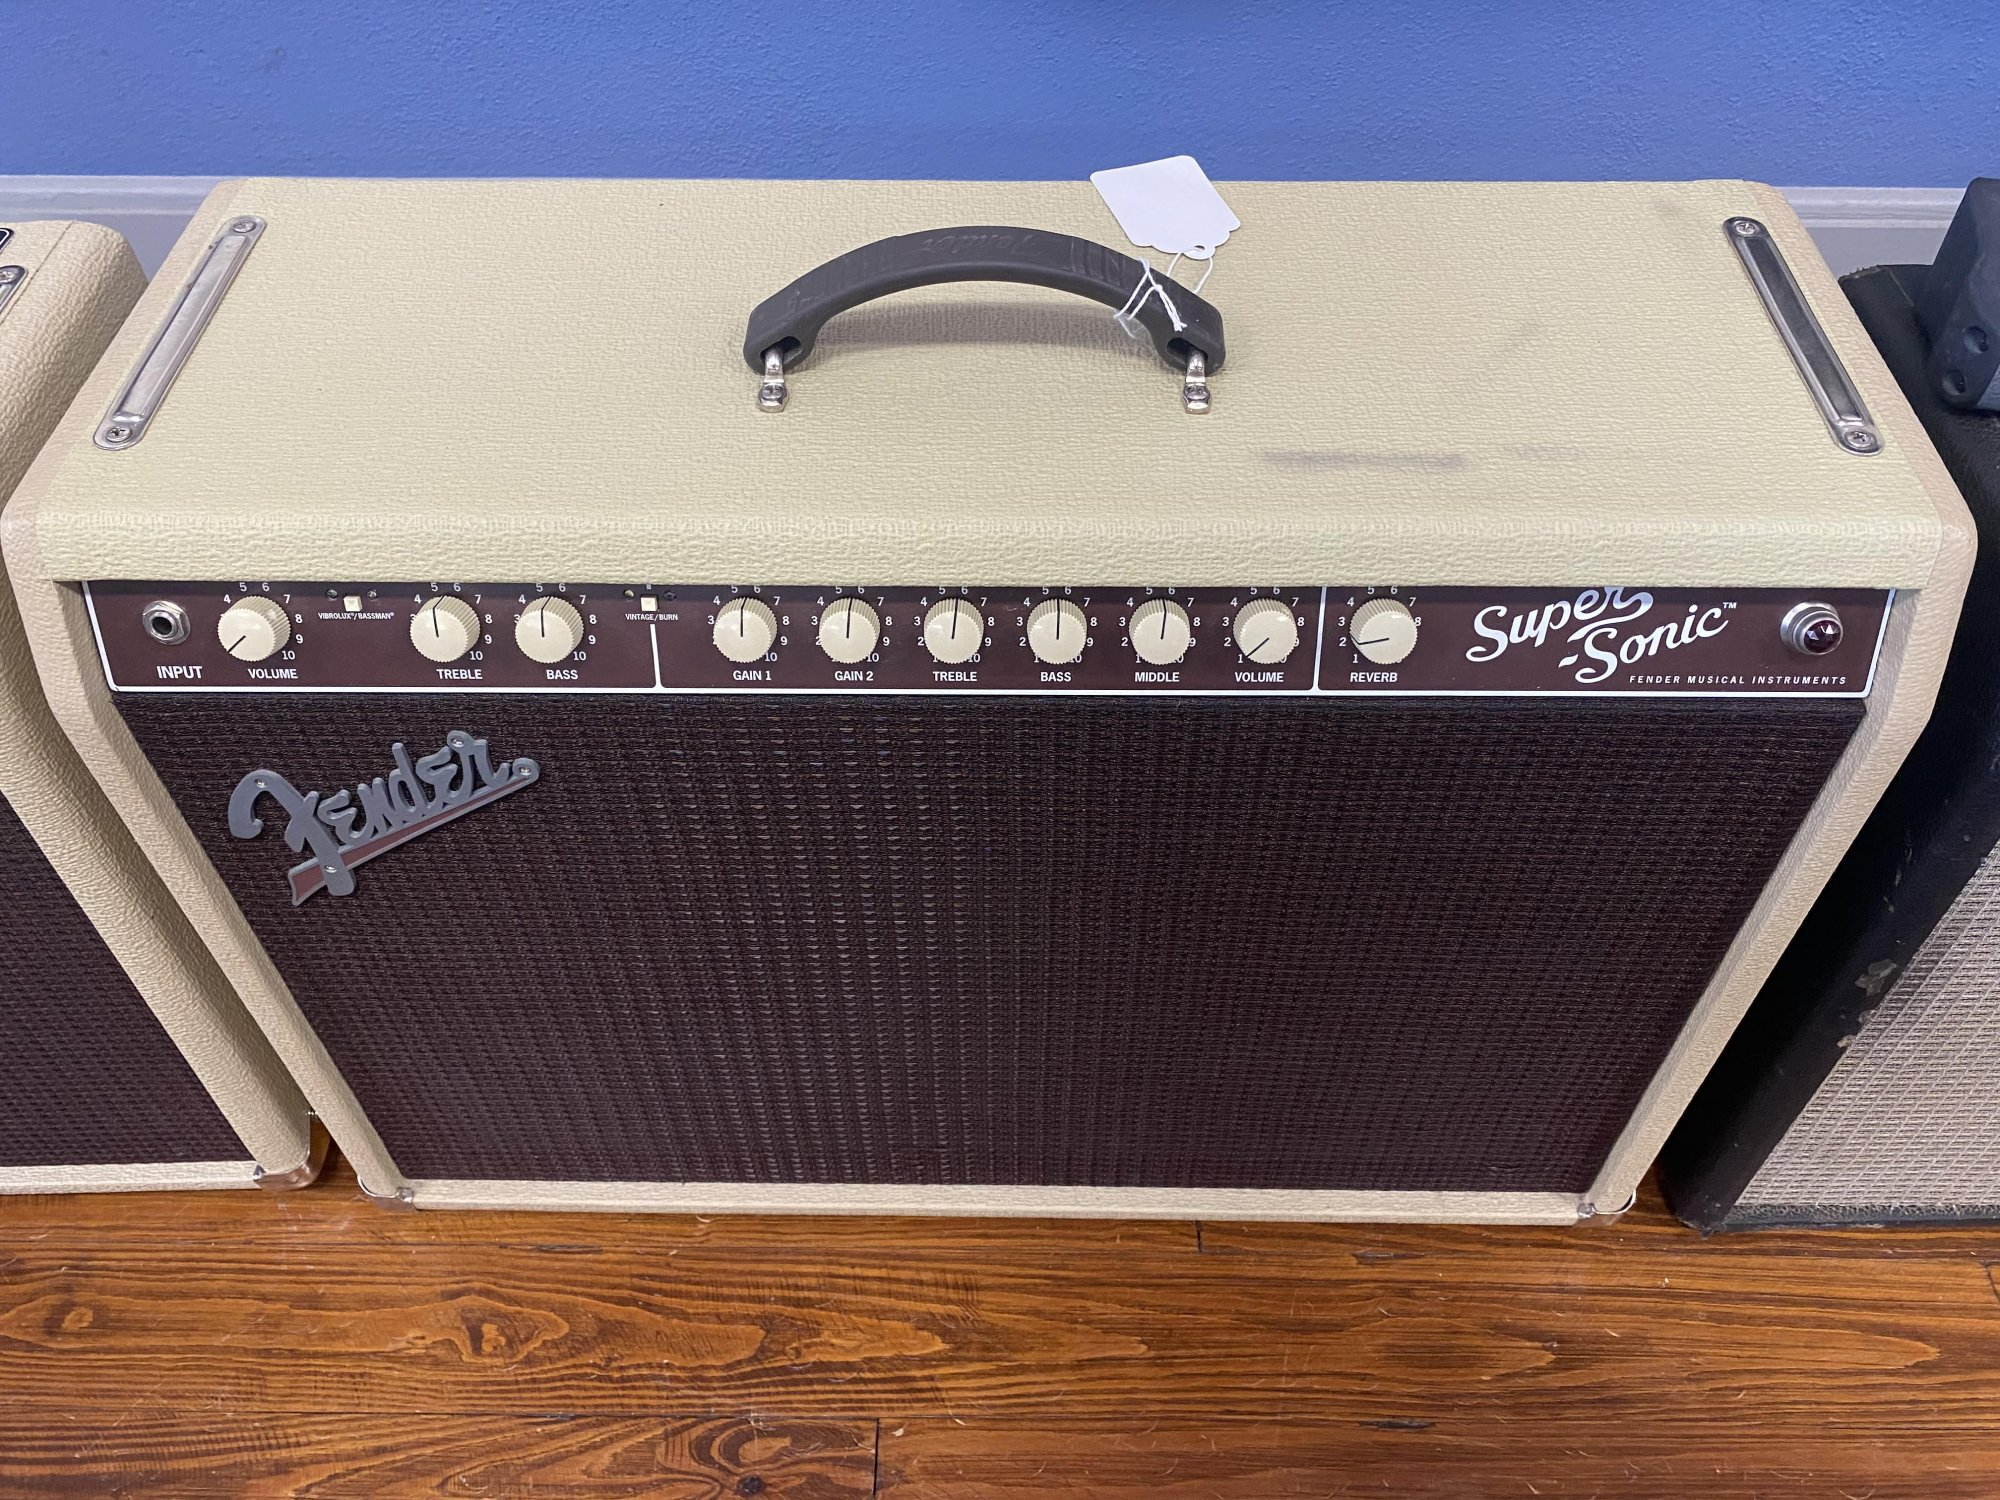 Used Fender Supersonic 60